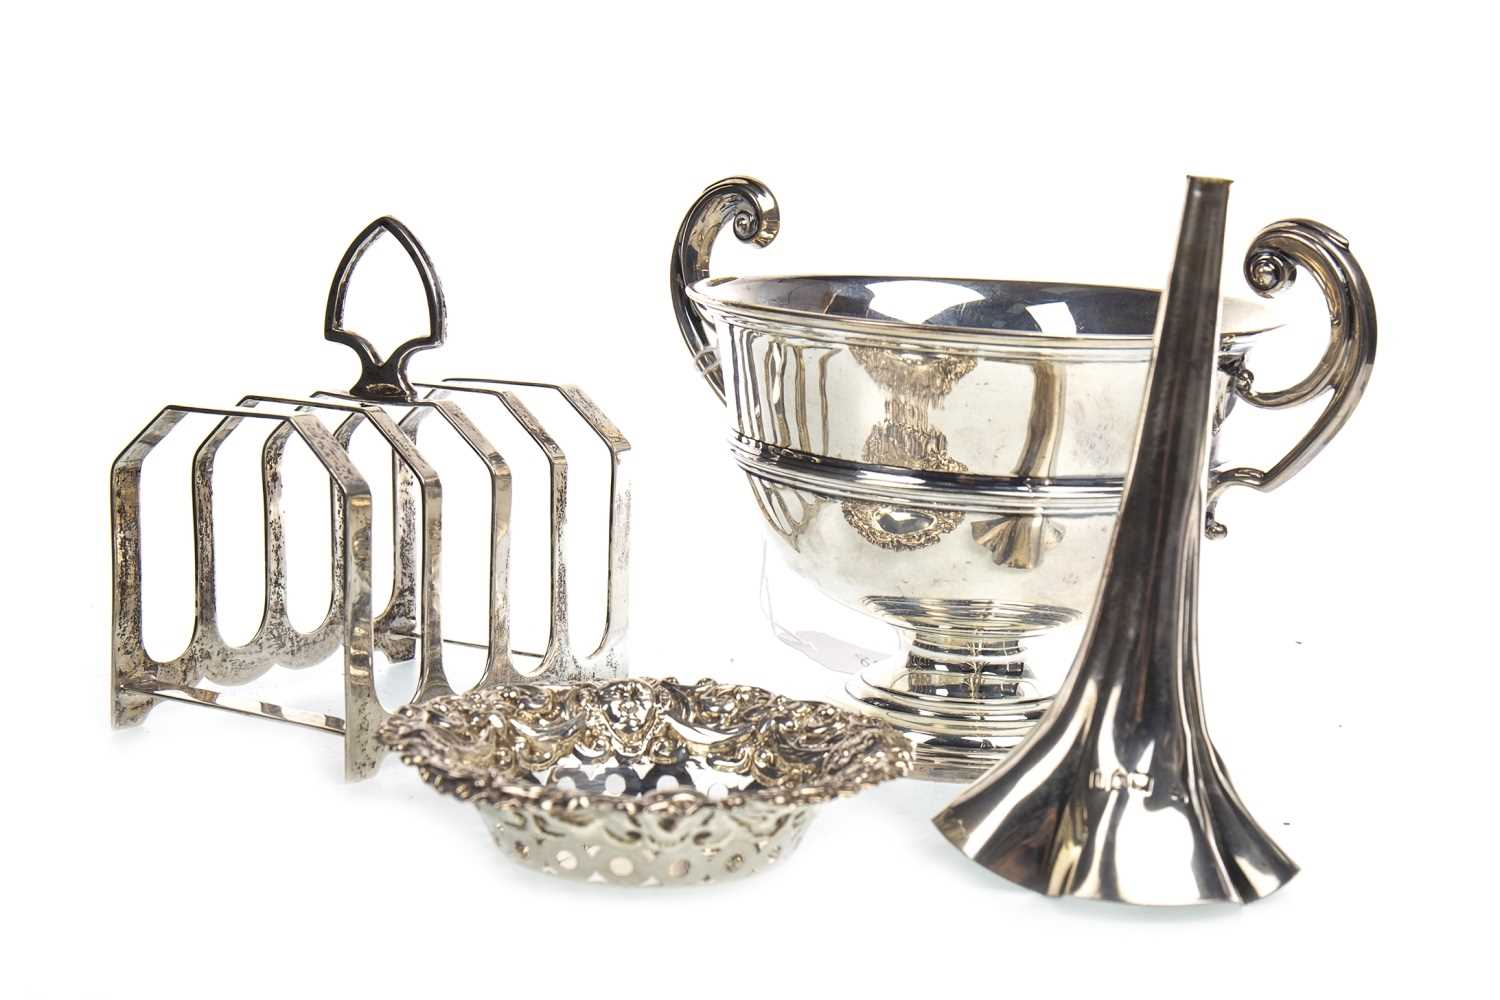 Lot 803-AN EDWARD VII TROPHY CUP AND OTHER EARLY 20TH CENTURY SILVER ITEMS